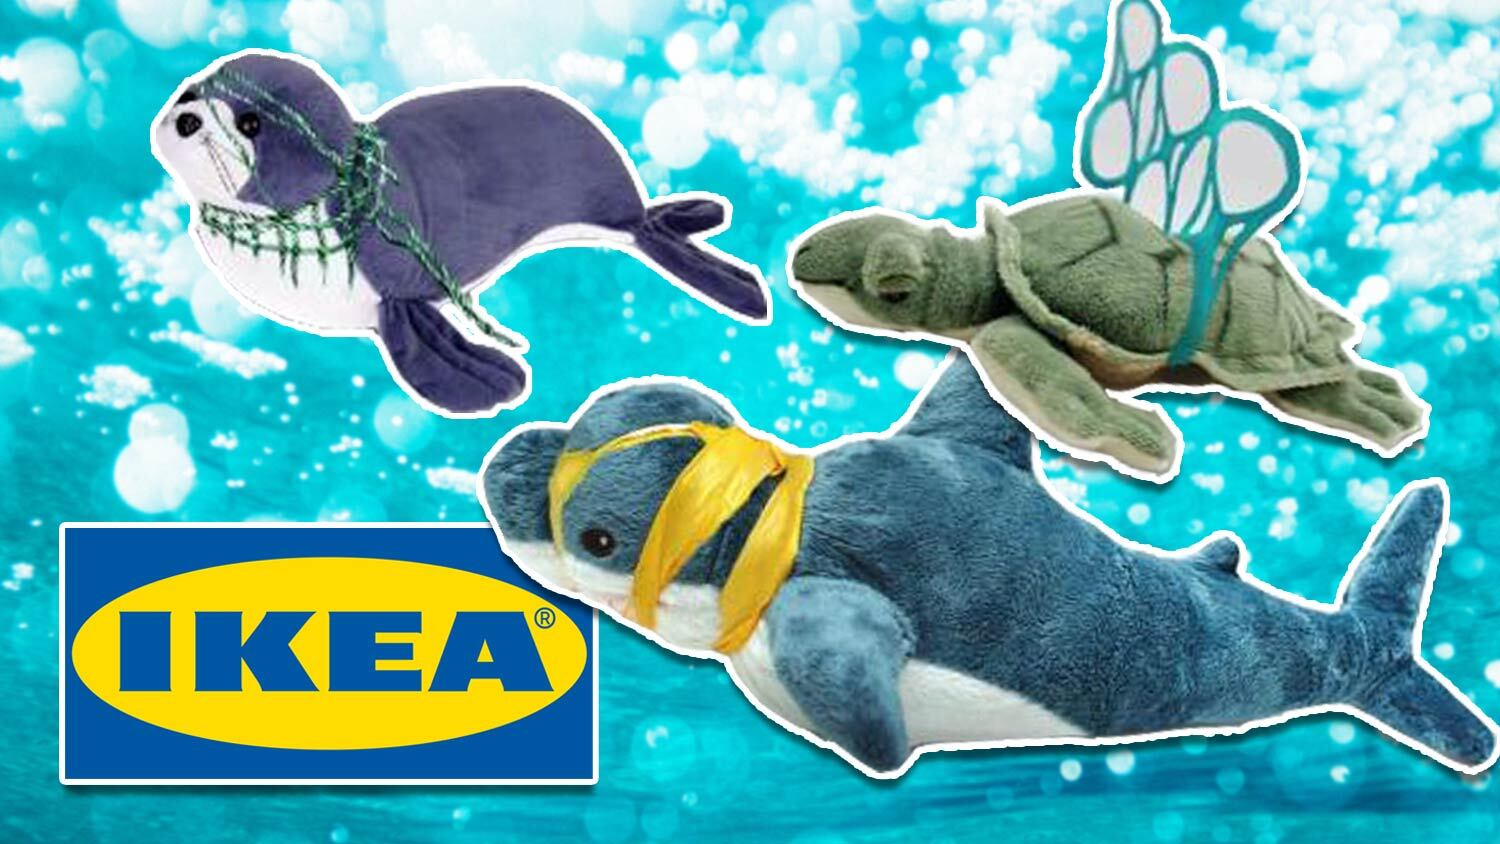 These Fake IKEA Toys Are Designed to Get You Off Plastic